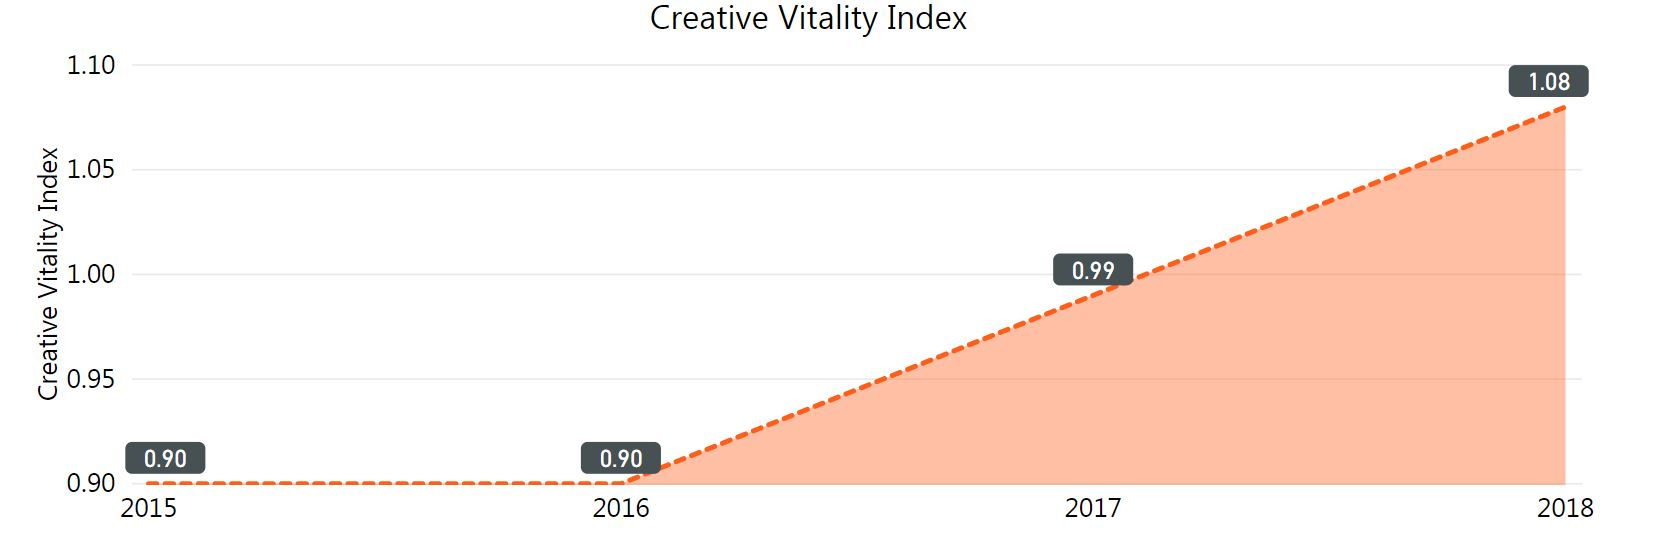 creative vitality index graph. increasing from .9 in 2016 to 1.08 in 2018